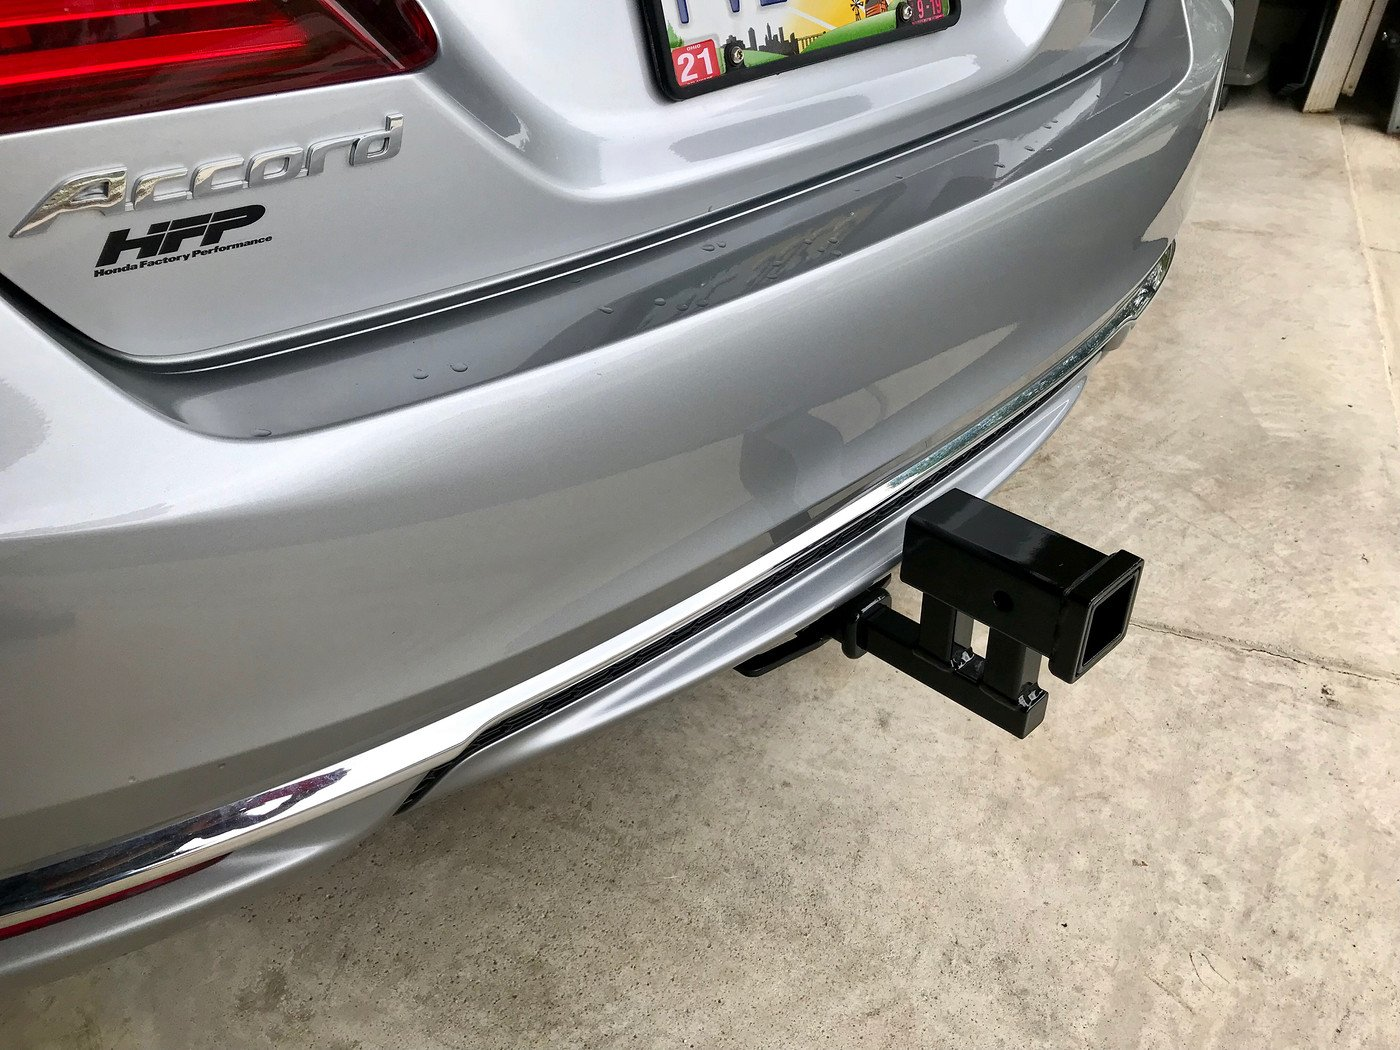 9th Gen: So what did you do with your Accord today? | Page